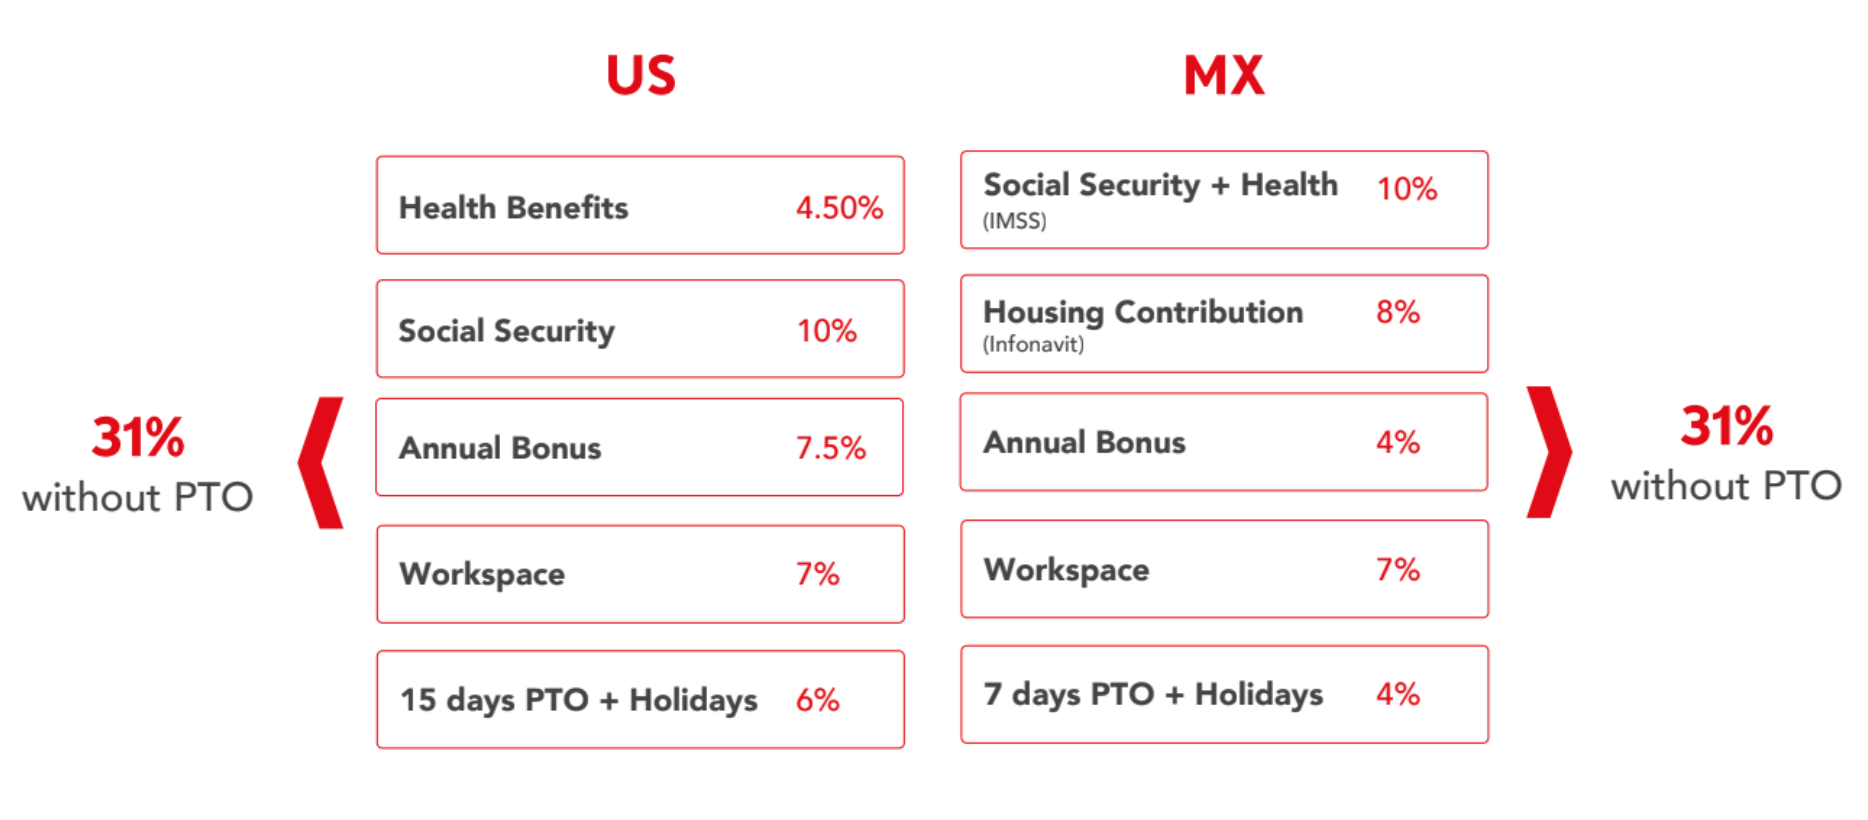 benefits comparasion mex vs us